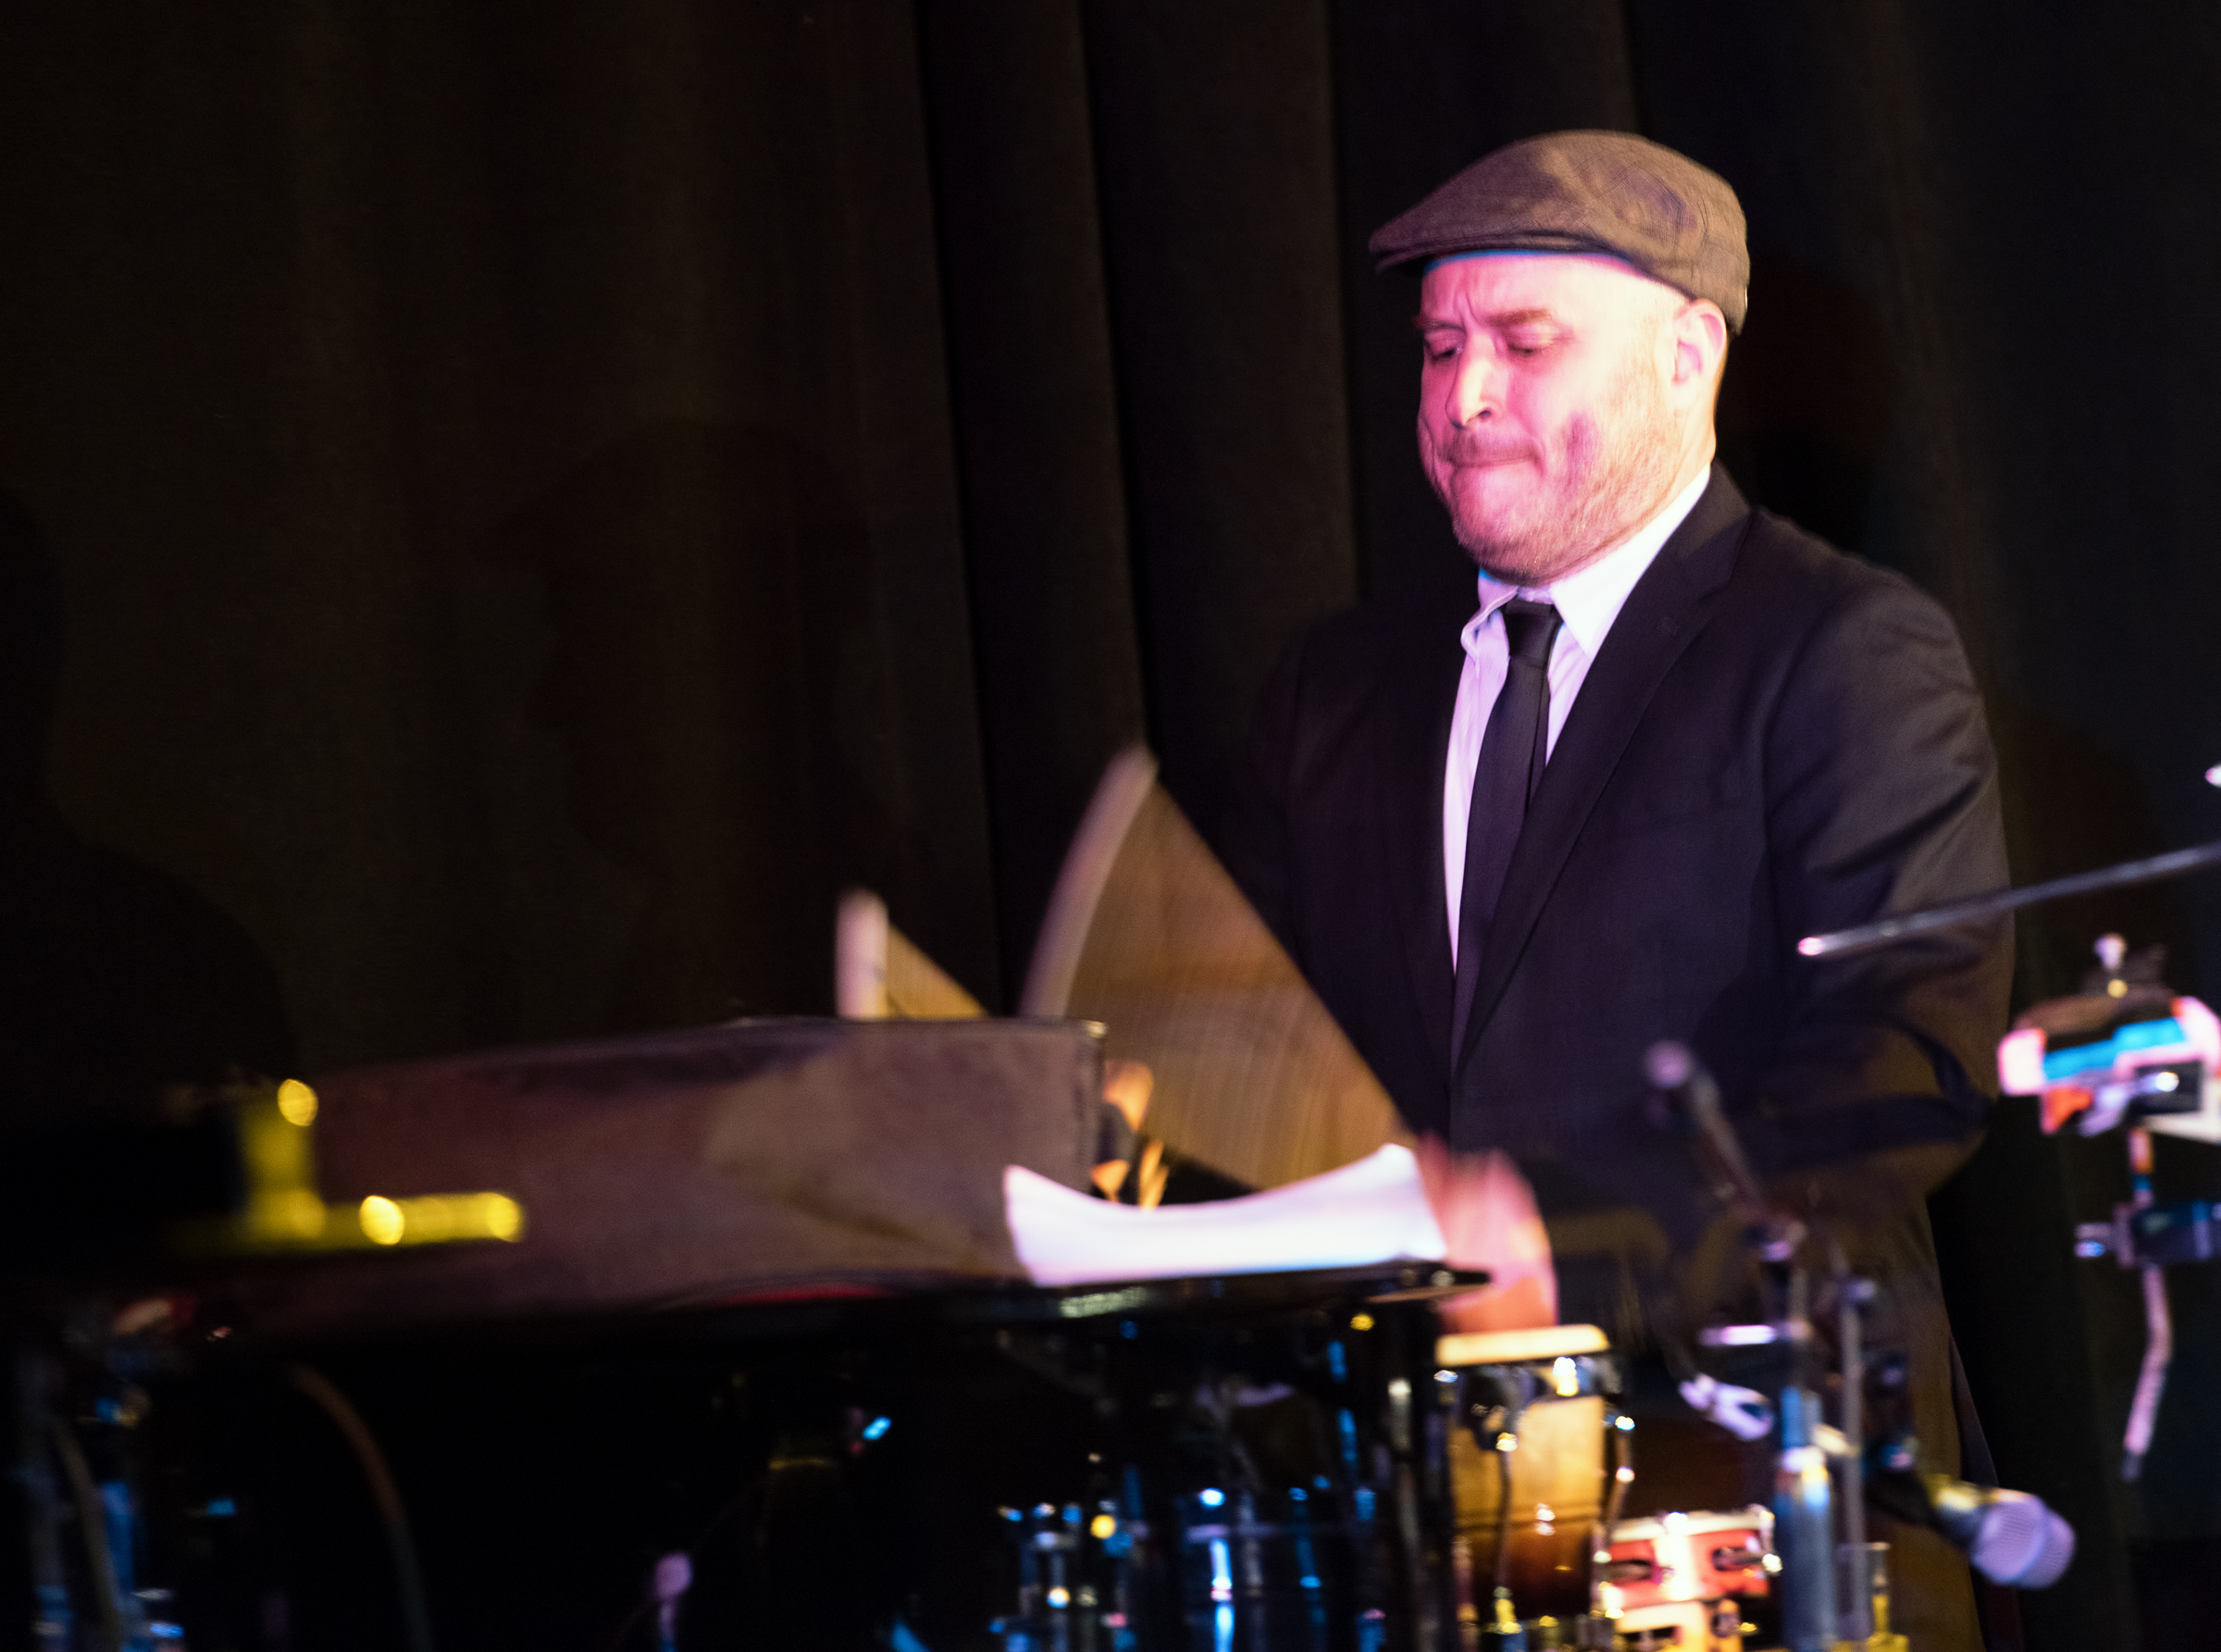 Ben Perowsky with Strange and Beautiful: the Music of John Lurie and the Lounge Lizards at the Nyc Winter Jazzfest 2015